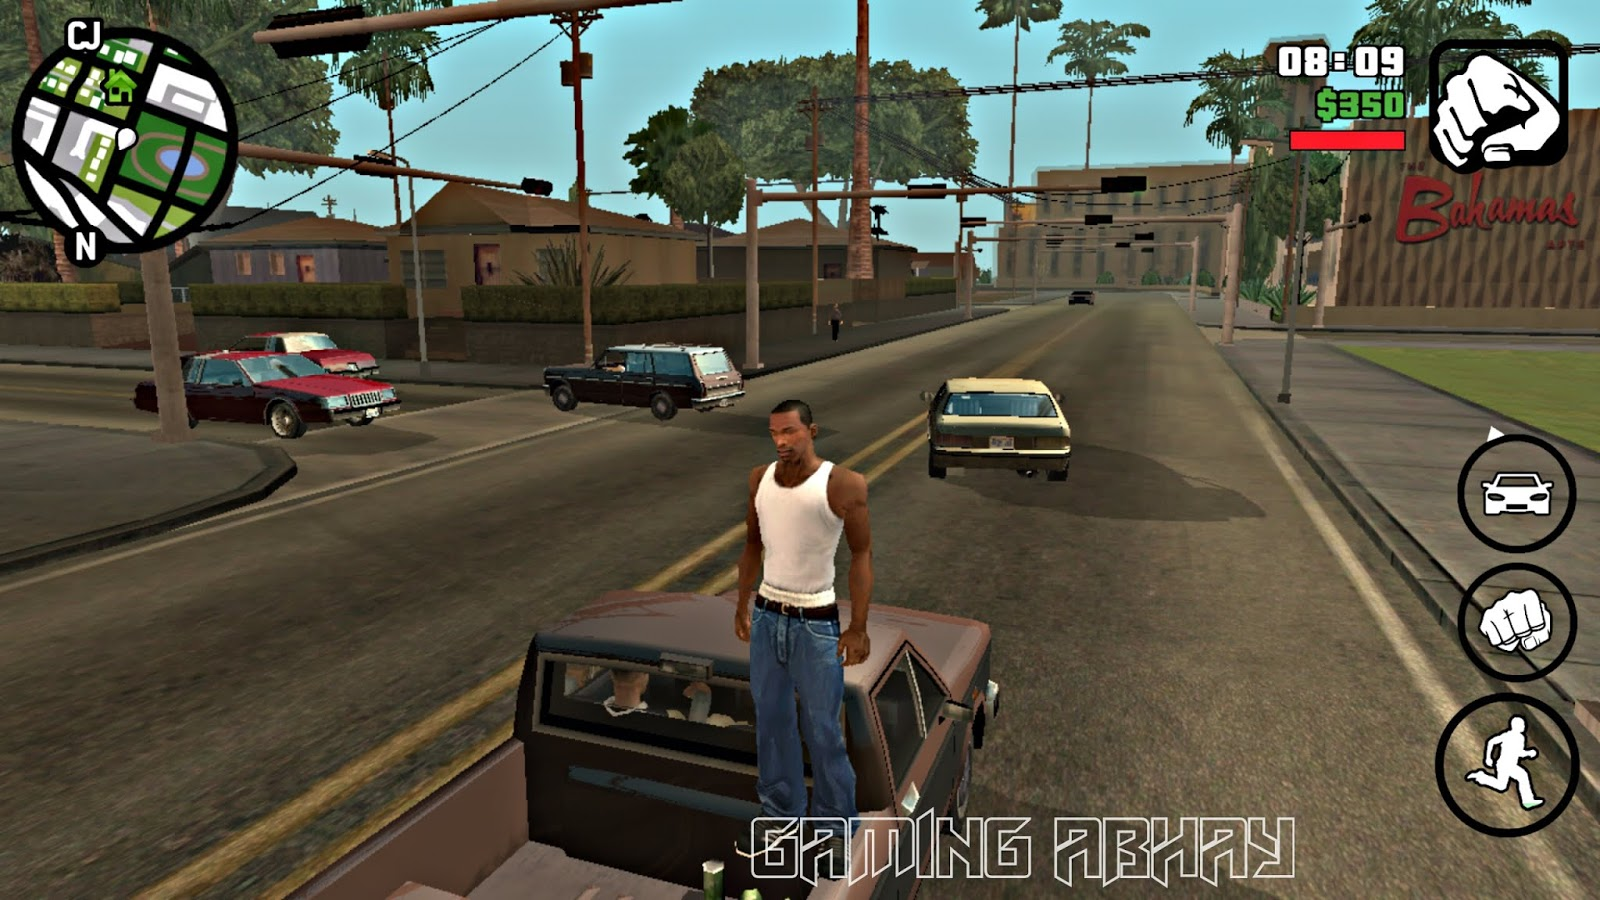 GTA SA LITE APK + DATA HIGHLY COMPRESSED (140MB) - All Is Here